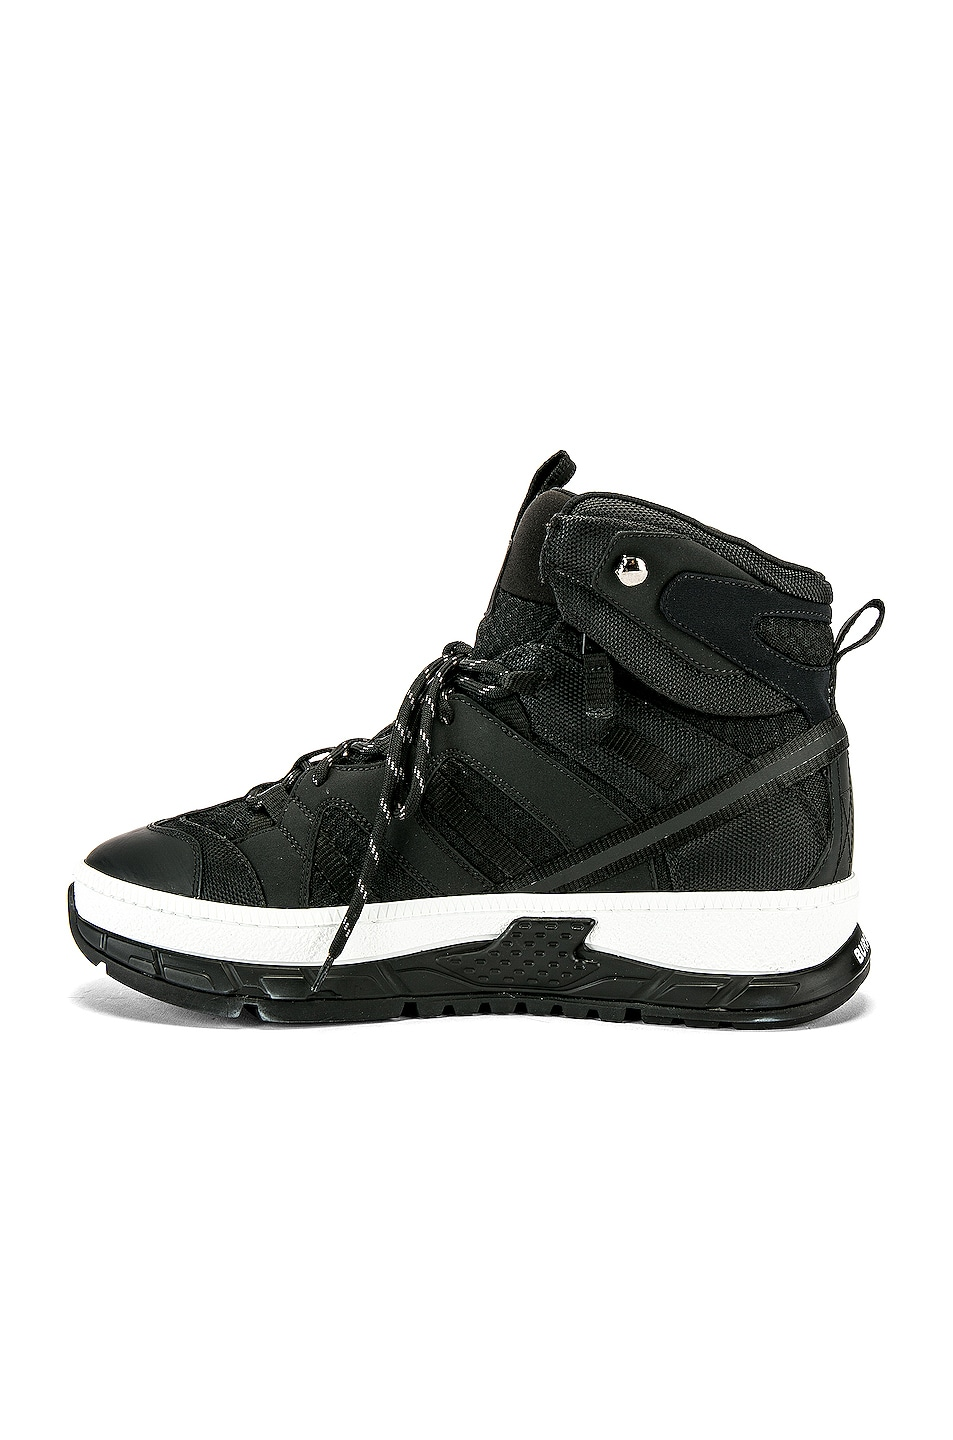 Image 5 of Burberry RS5 High C Sneaker in Black